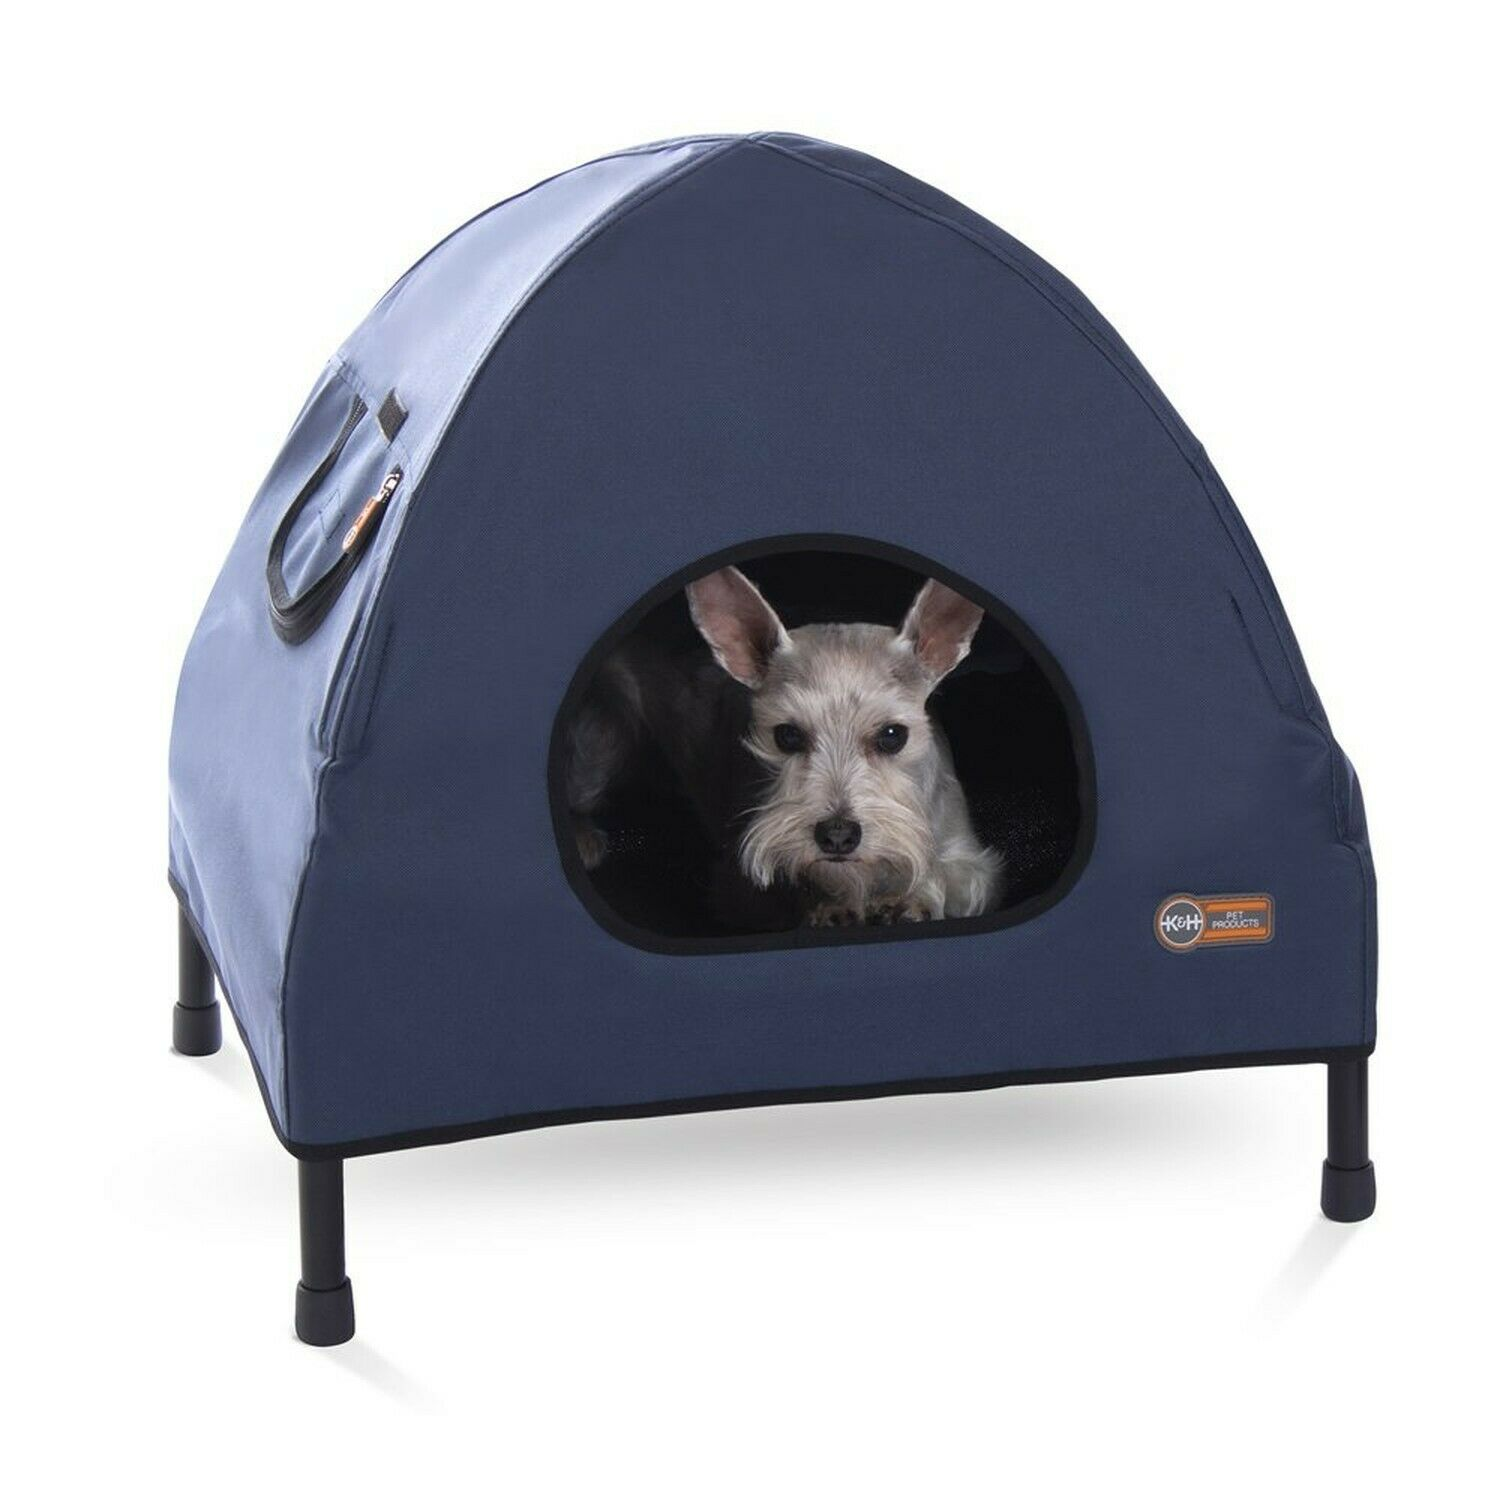 K&H Original Pet Elevated Bed for Dogs Cats, Small Blau S